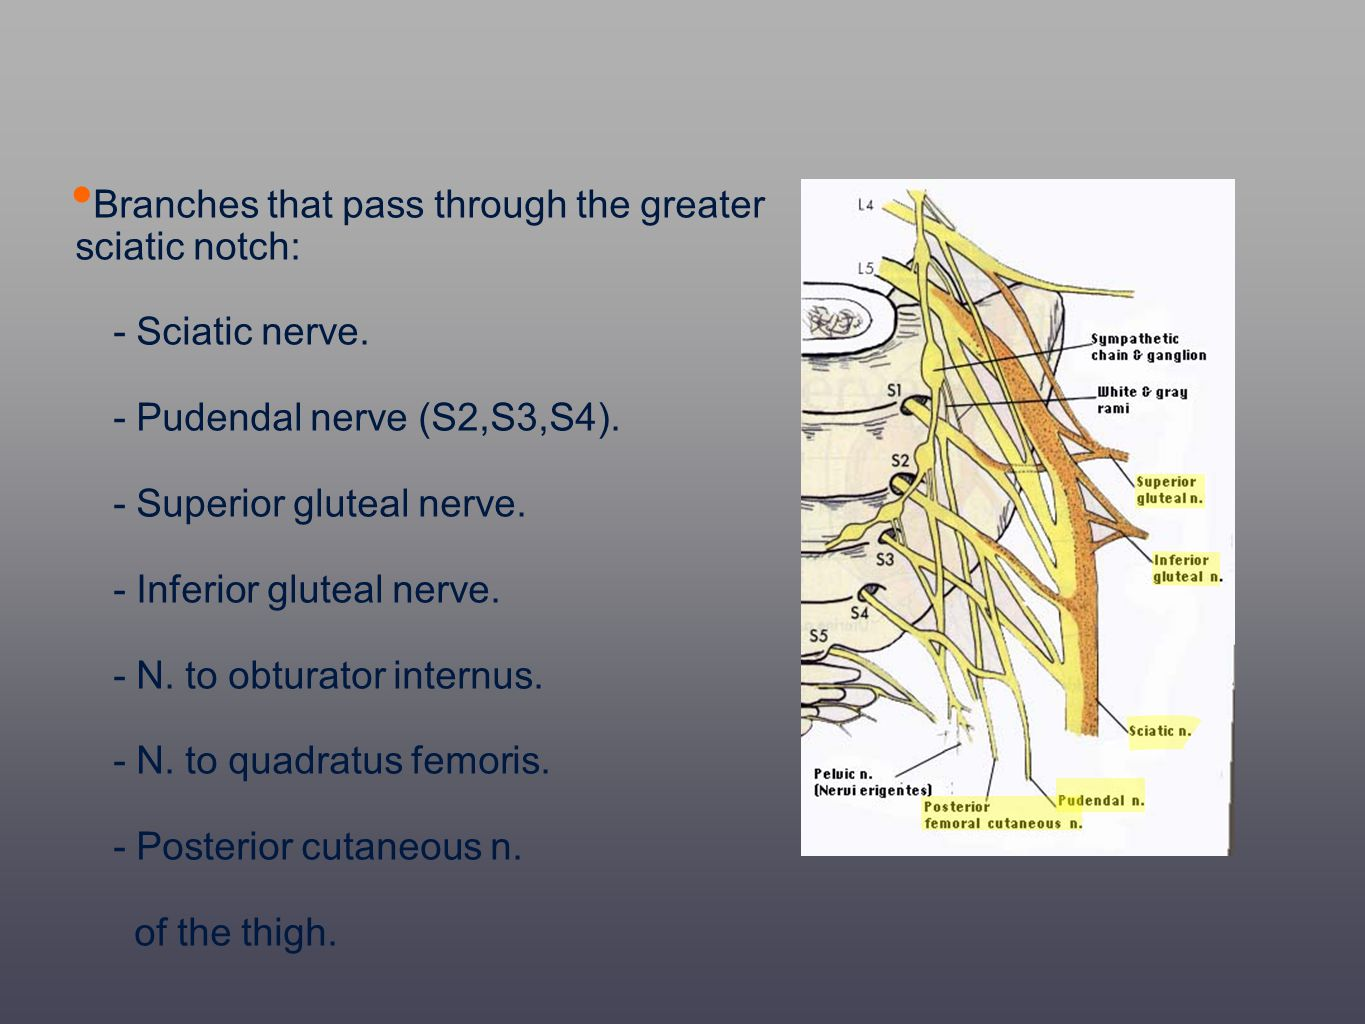 Branches that pass through the greater sciatic notch: - Sciatic nerve. - Pudendal nerve (S2,S3,S4). - Superior gluteal nerve. - Inferior gluteal nerve